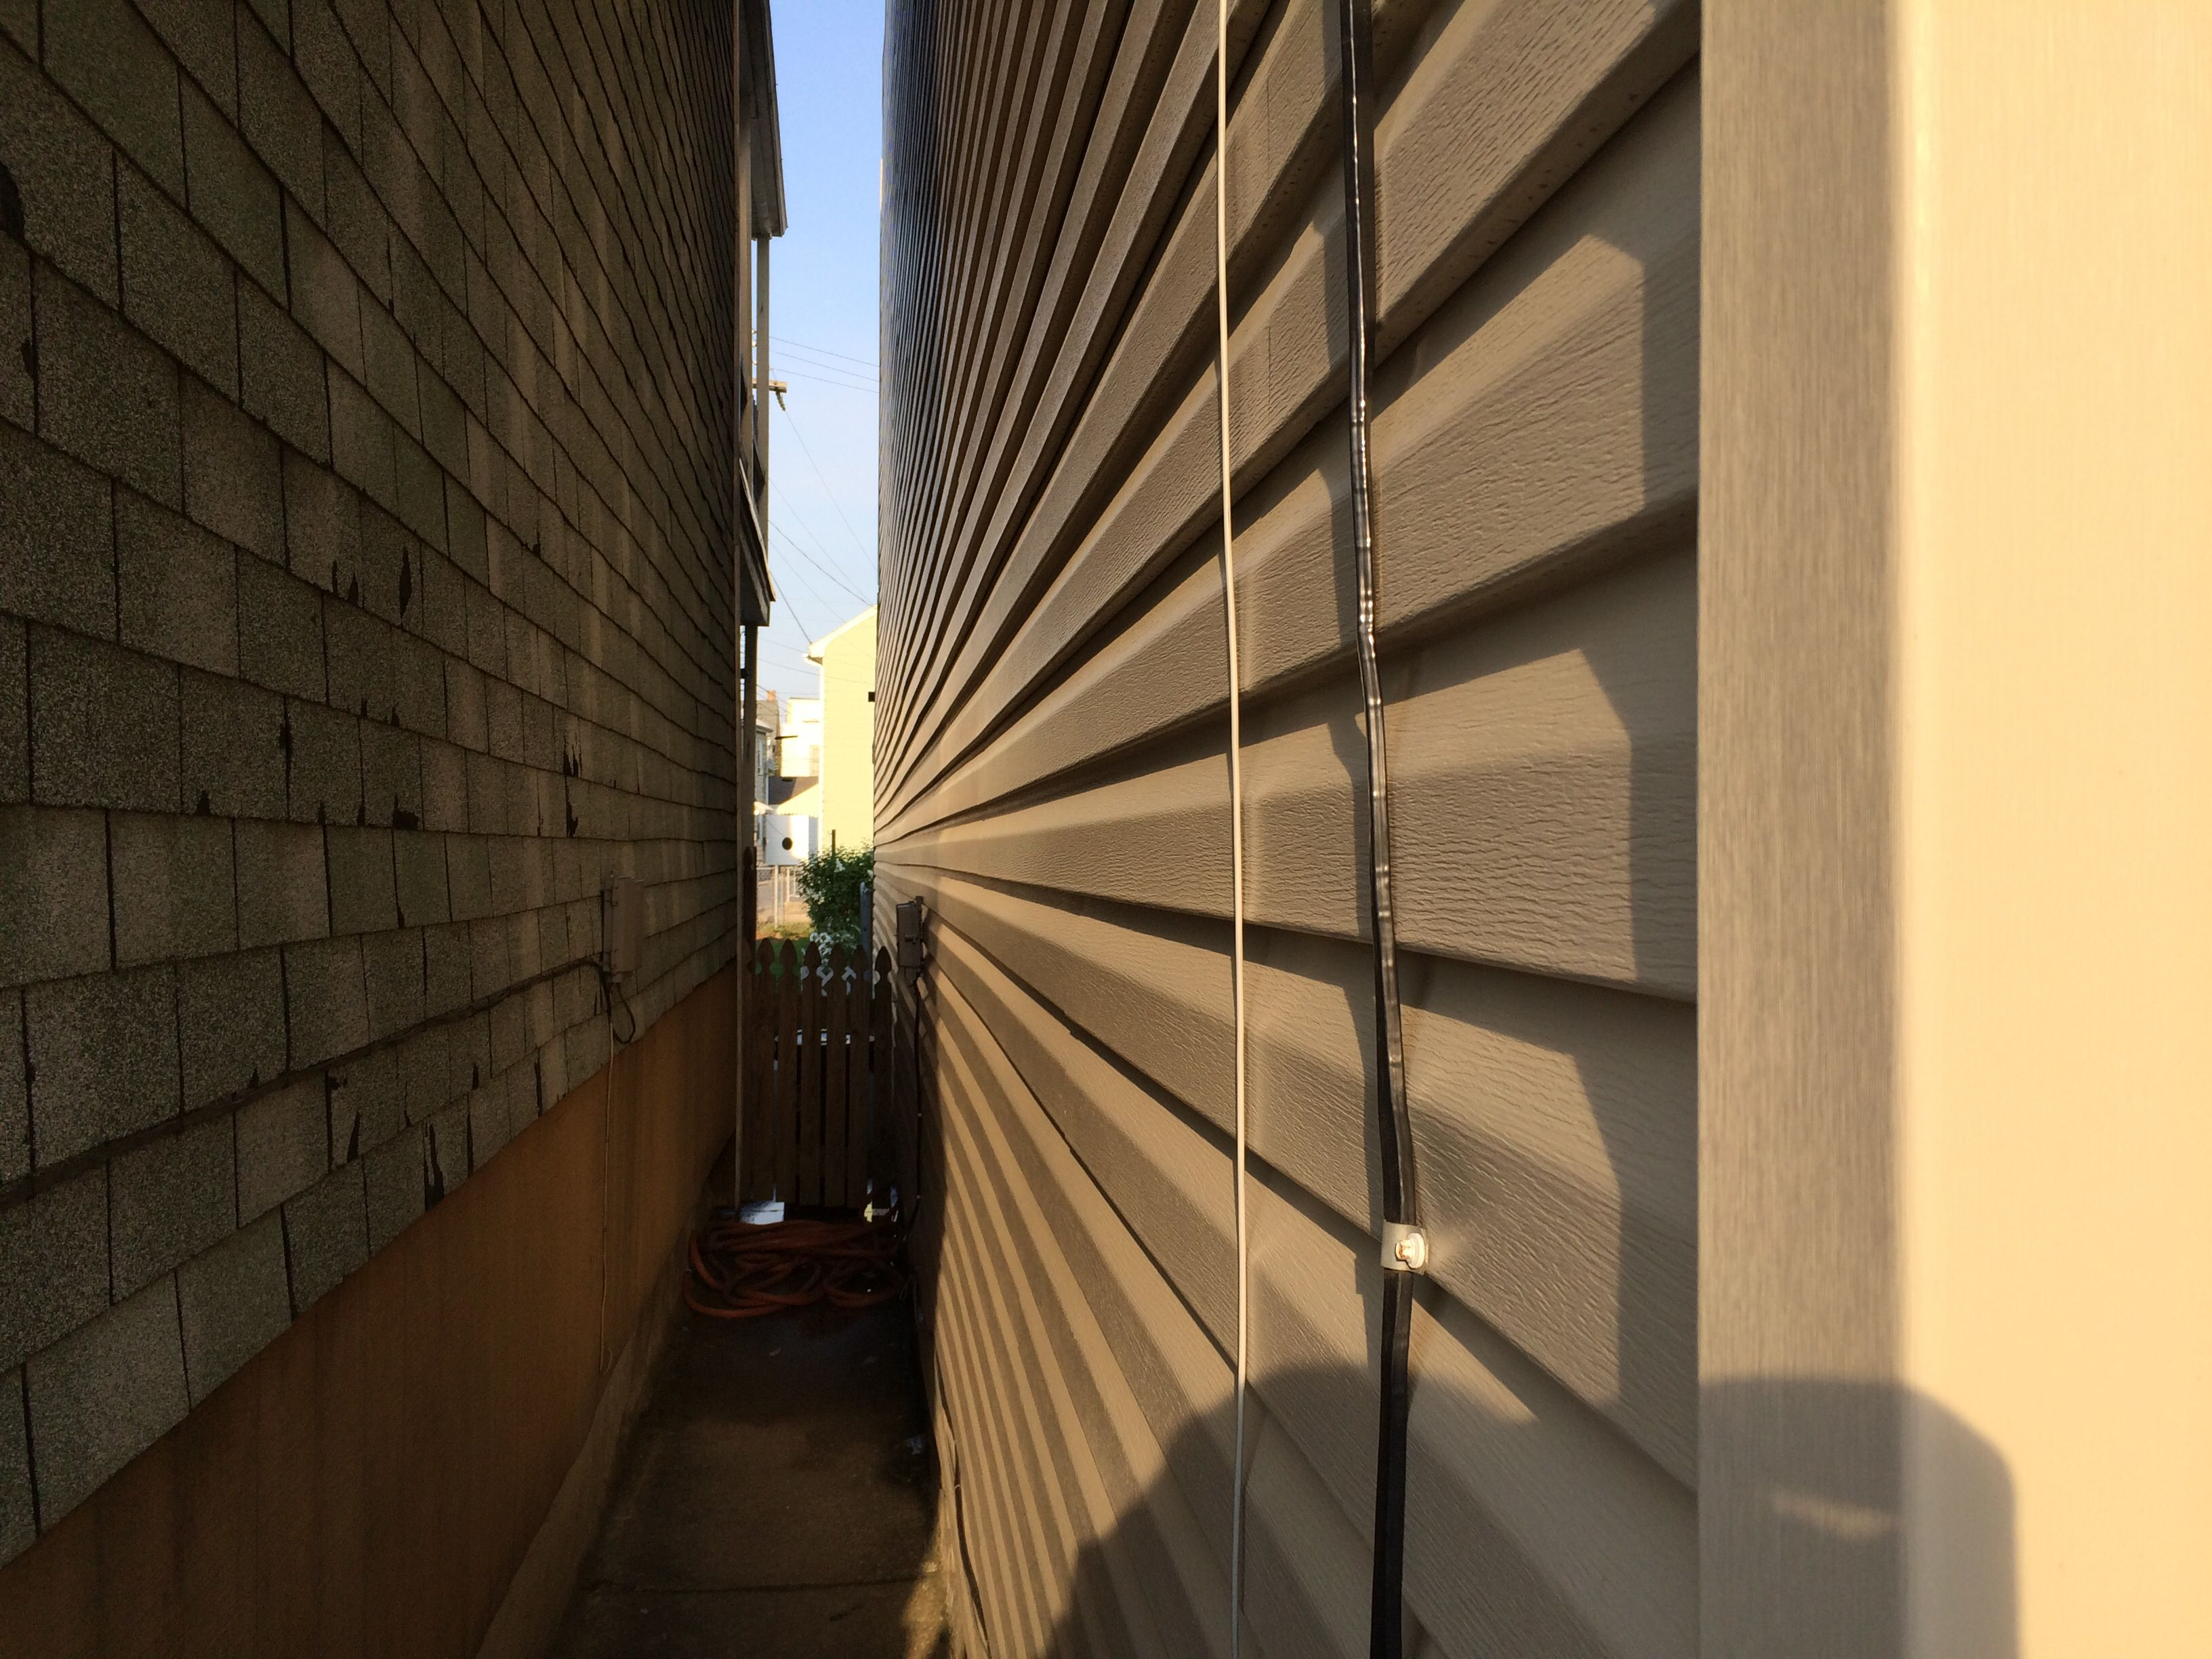 The German Dutch Lap Vinyl Siding Profile Stays True To The Real